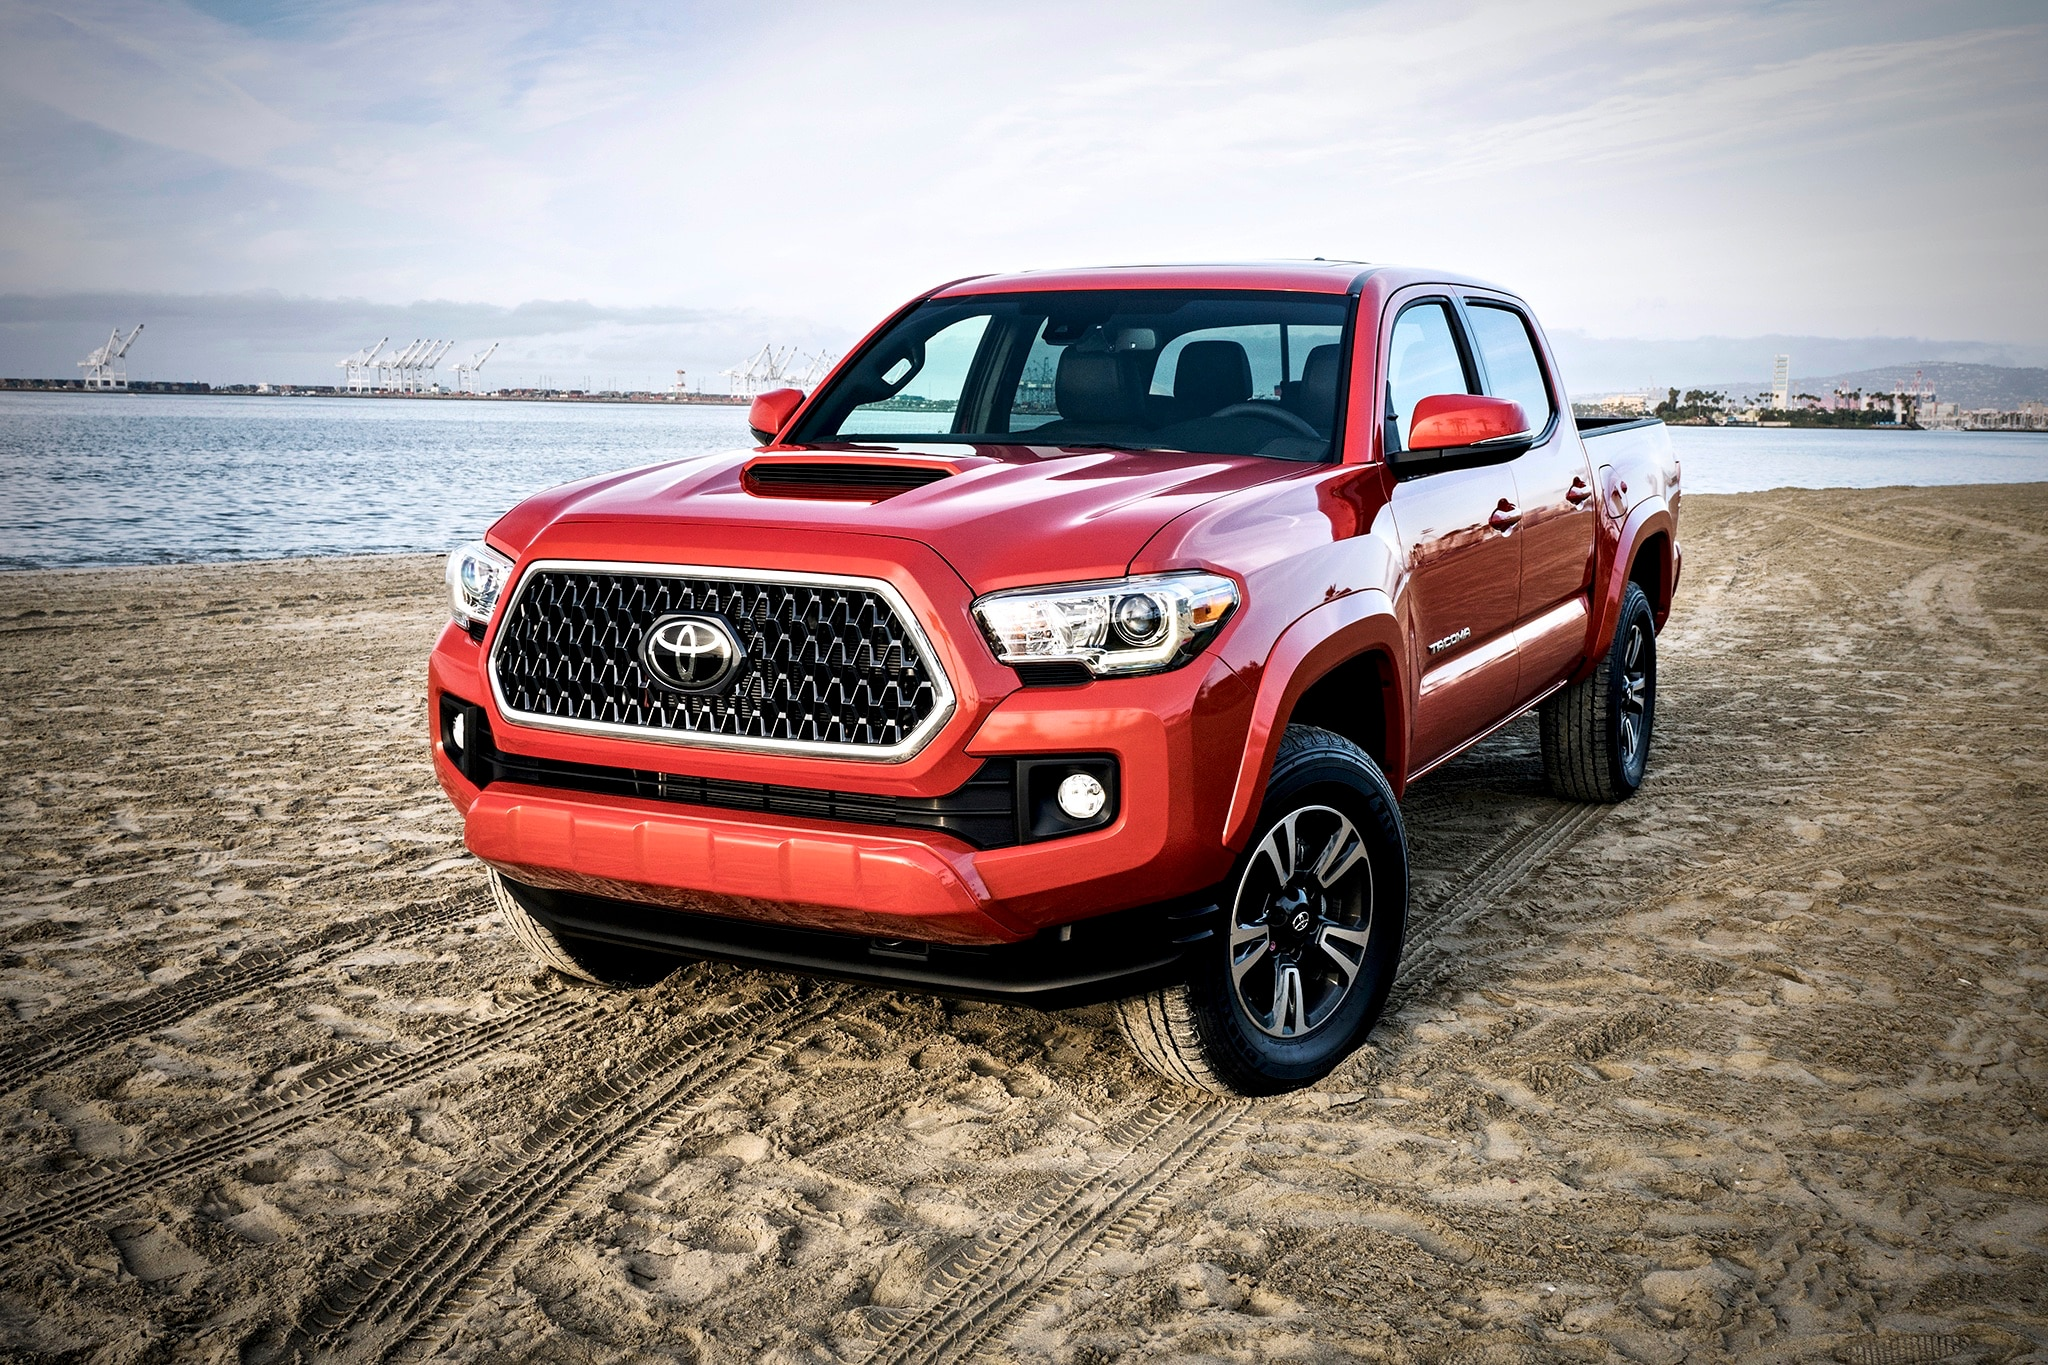 review the sport driving trd daily octane tacoma toyota